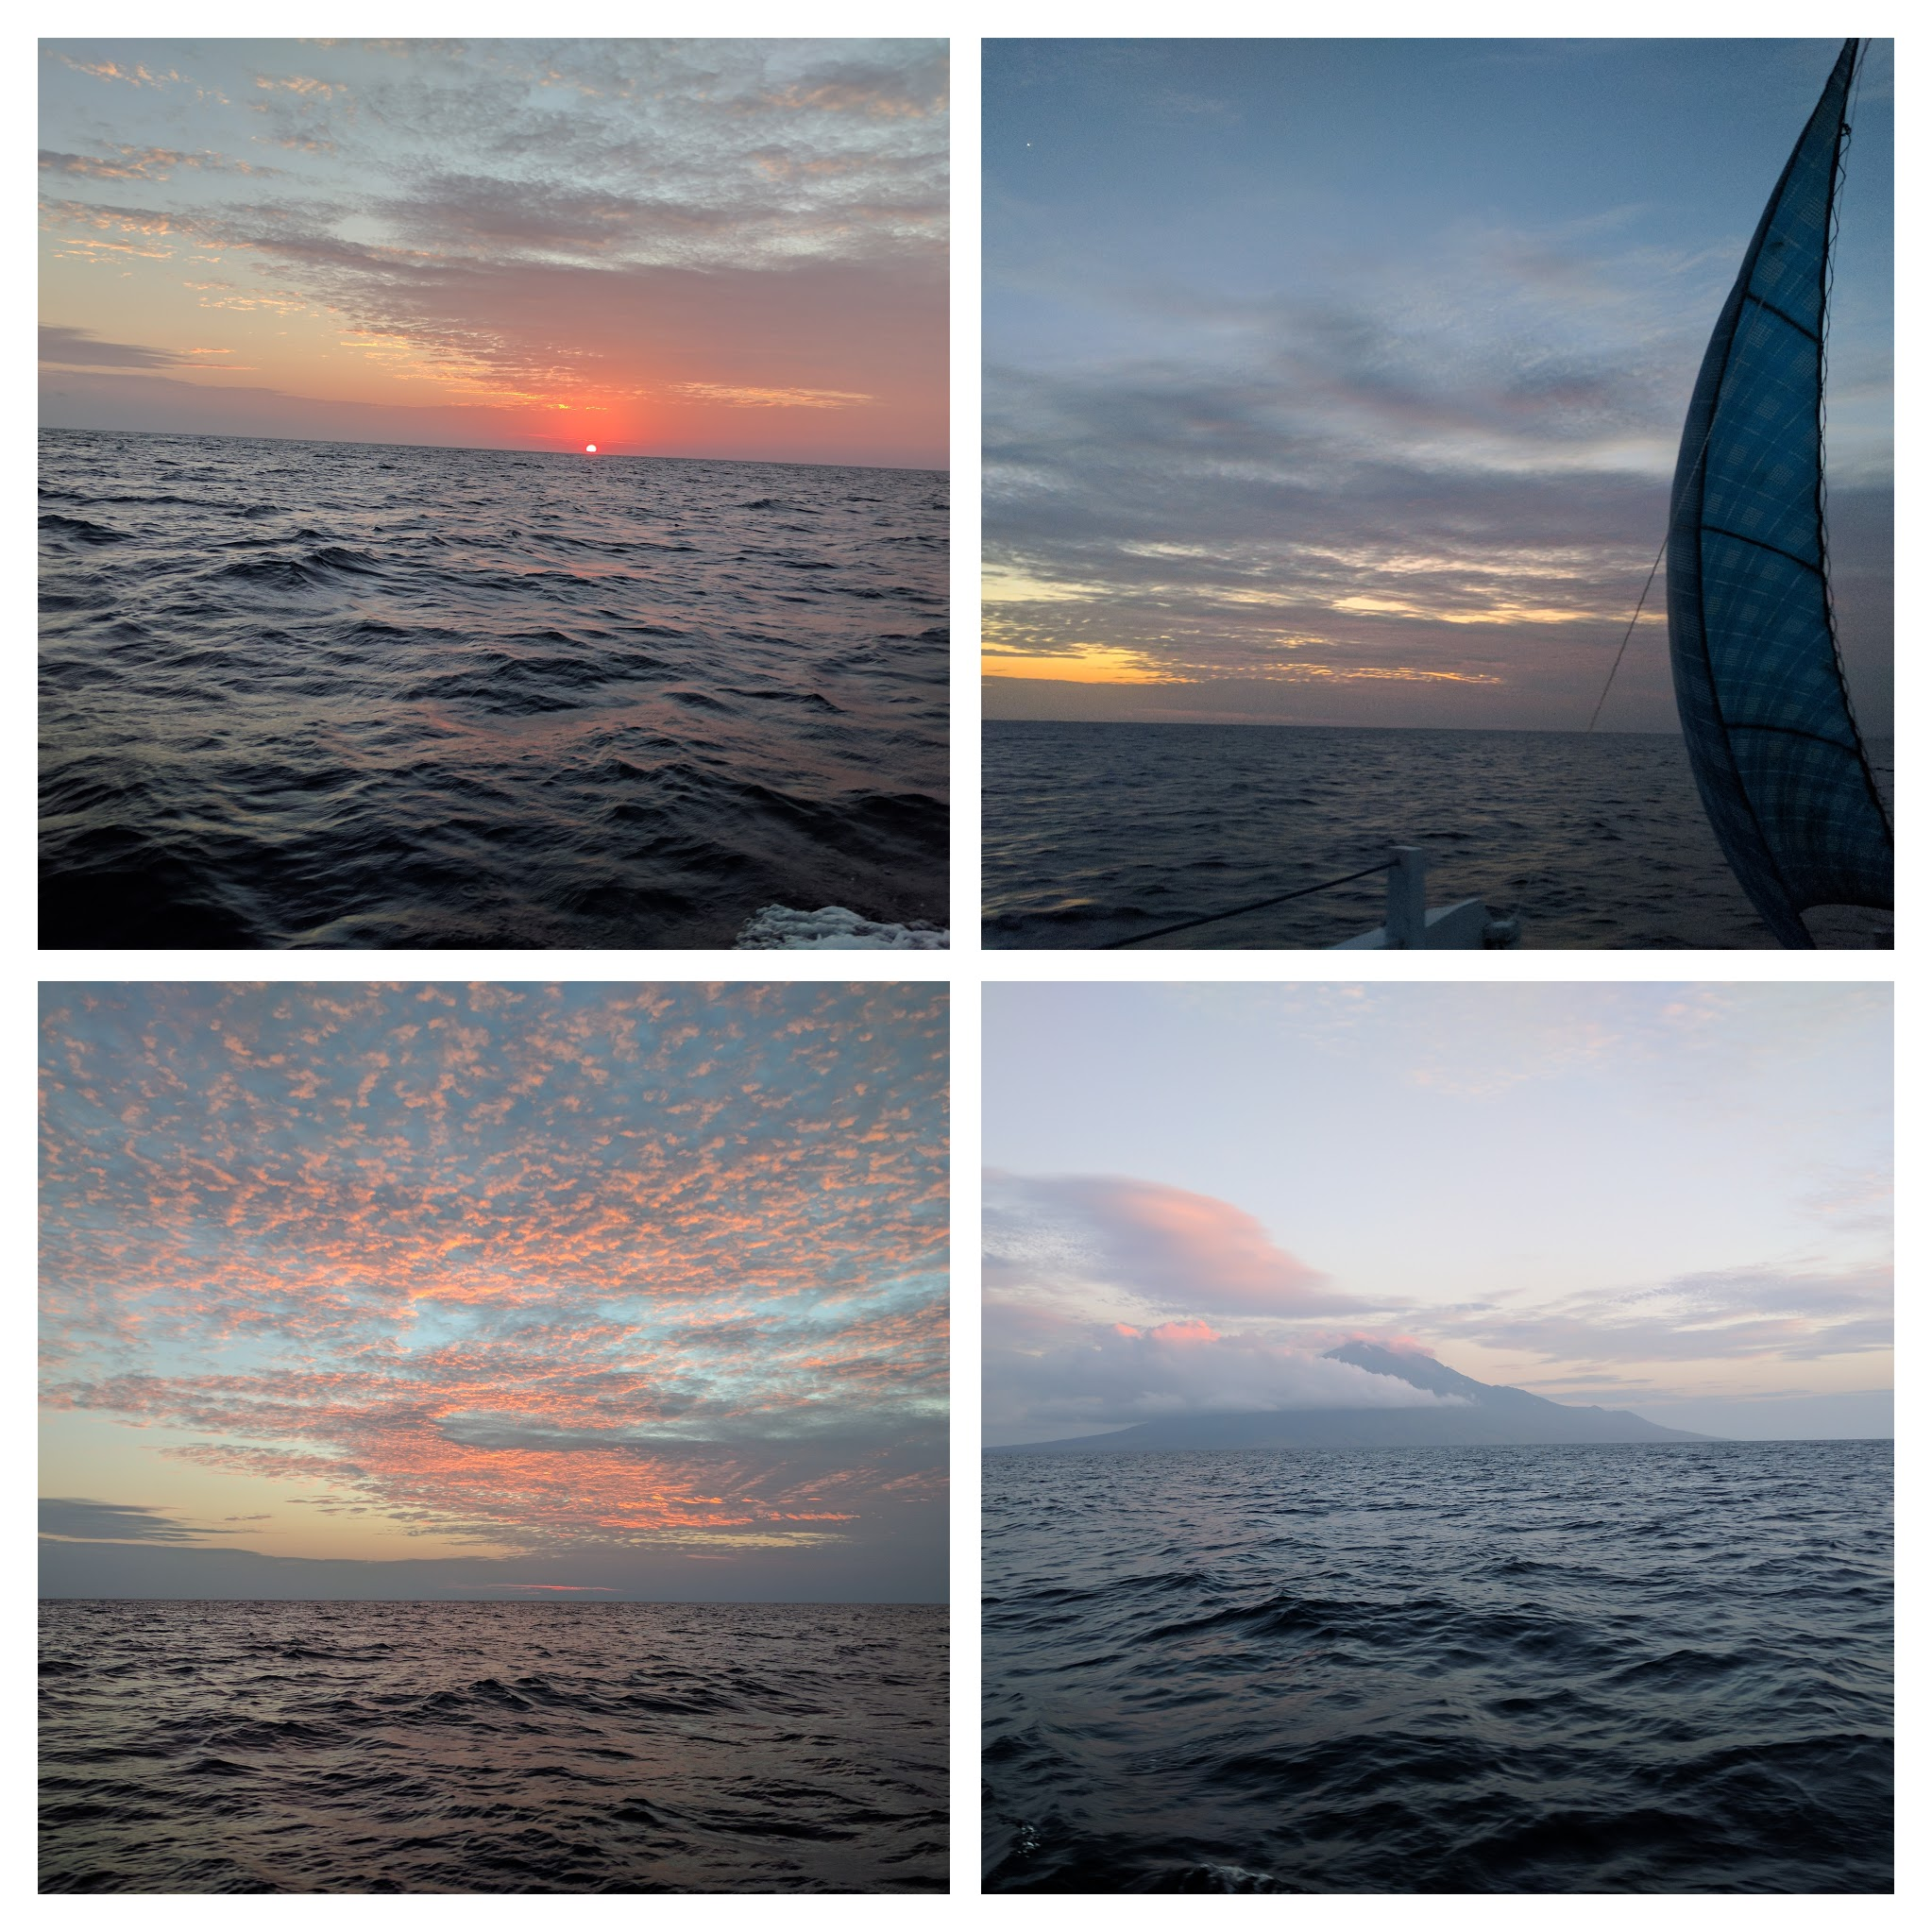 Lever soleil croisiere collage